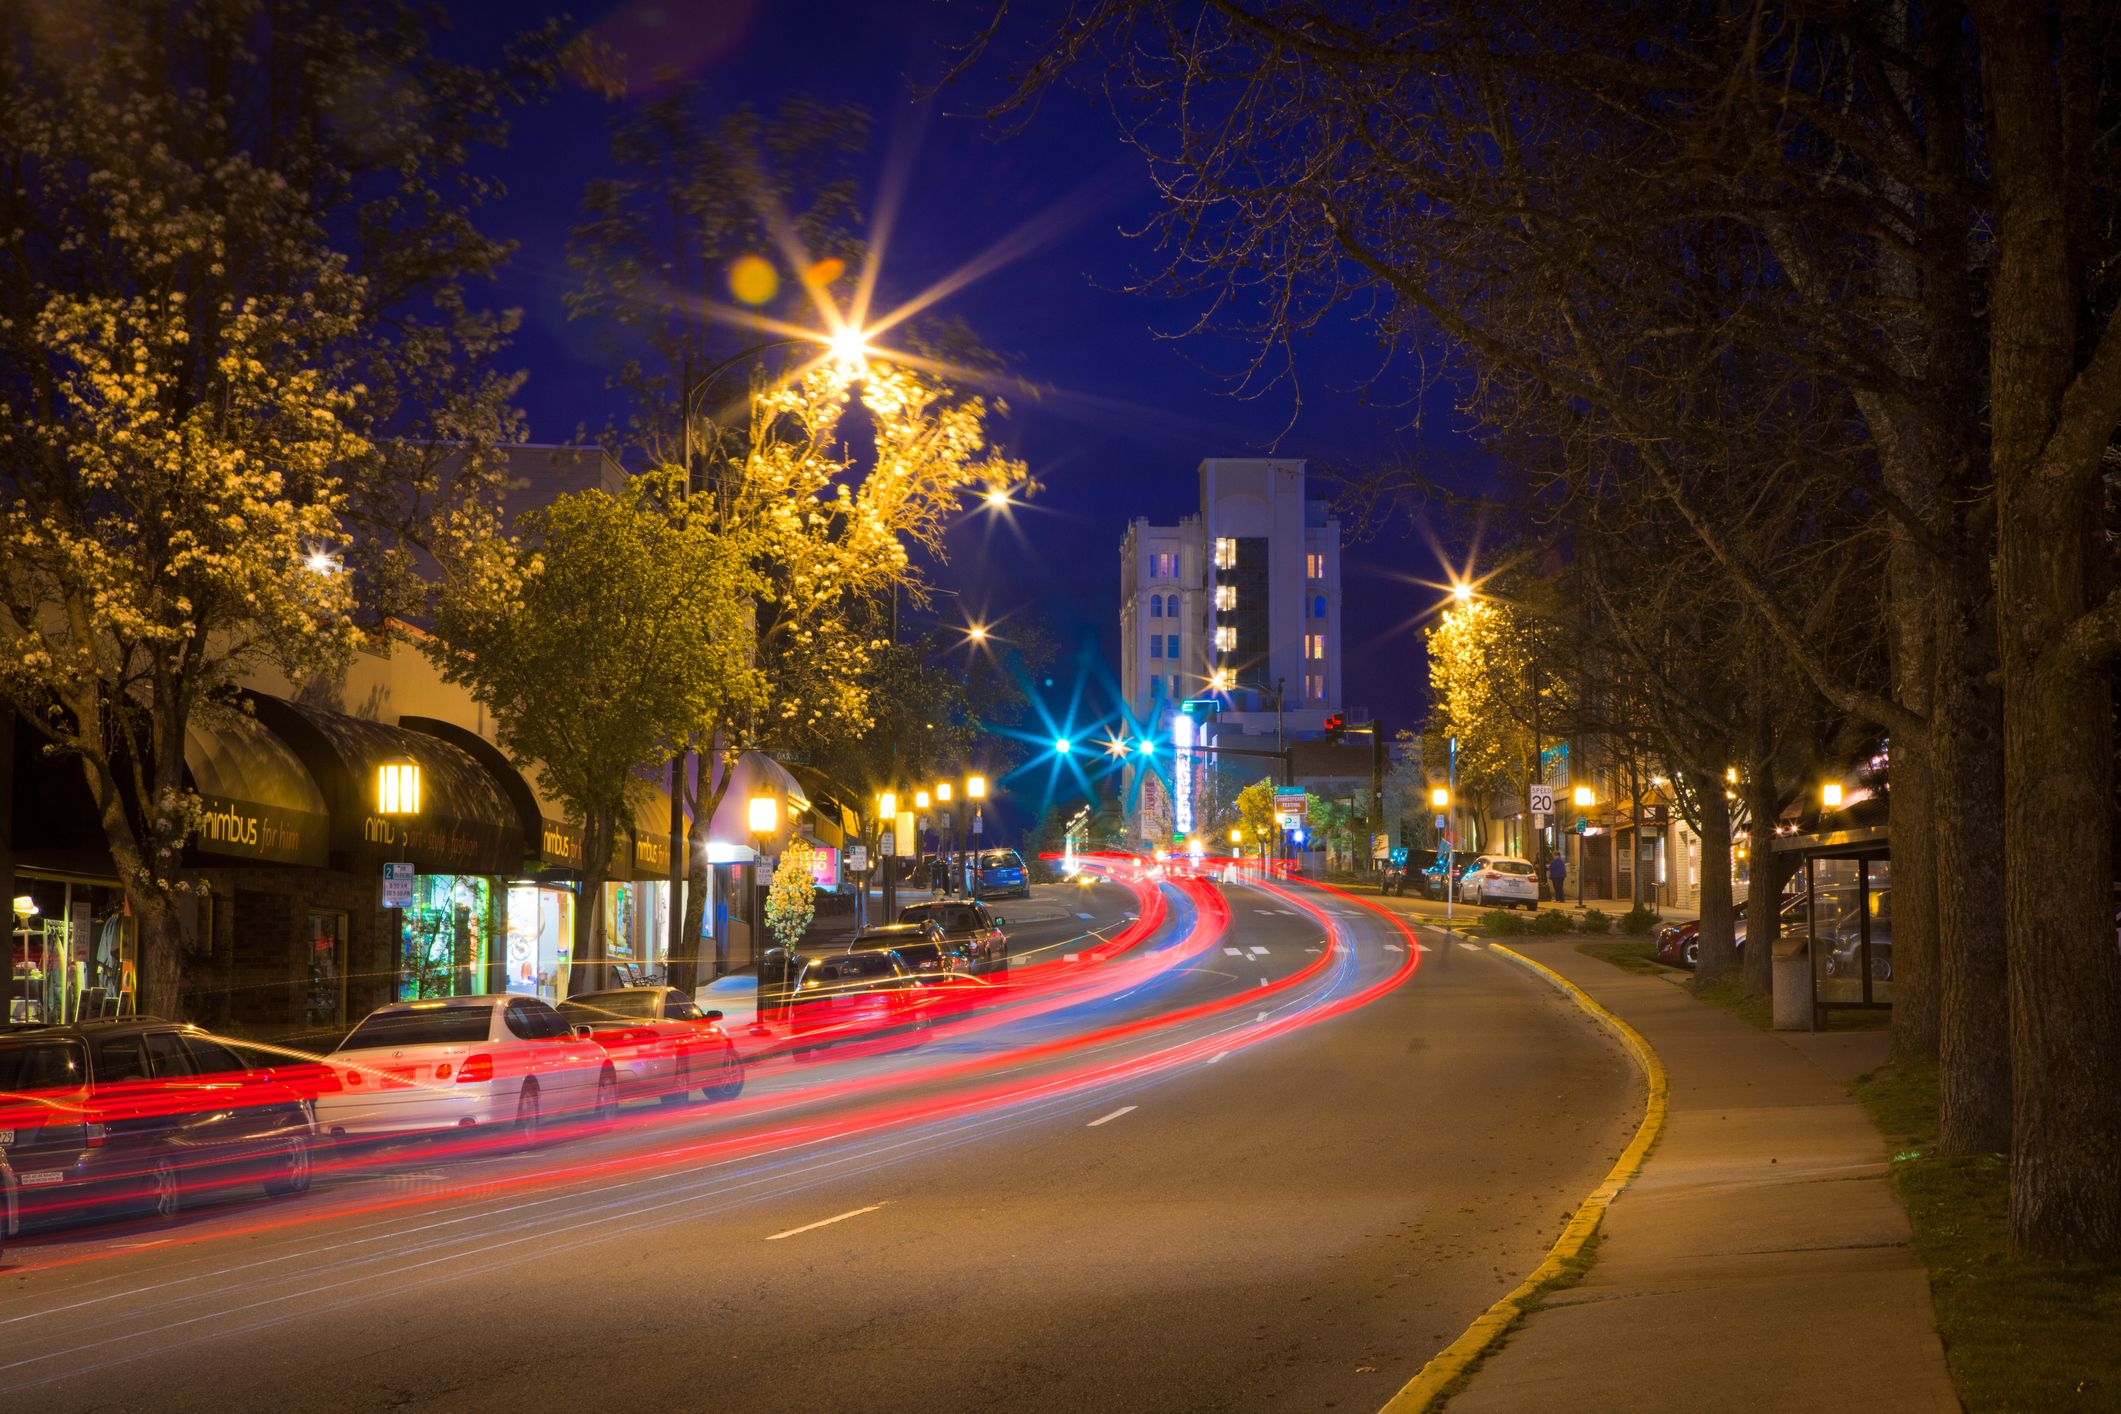 19 Best Small Towns in Oregon - Cute Oregon Small Towns to